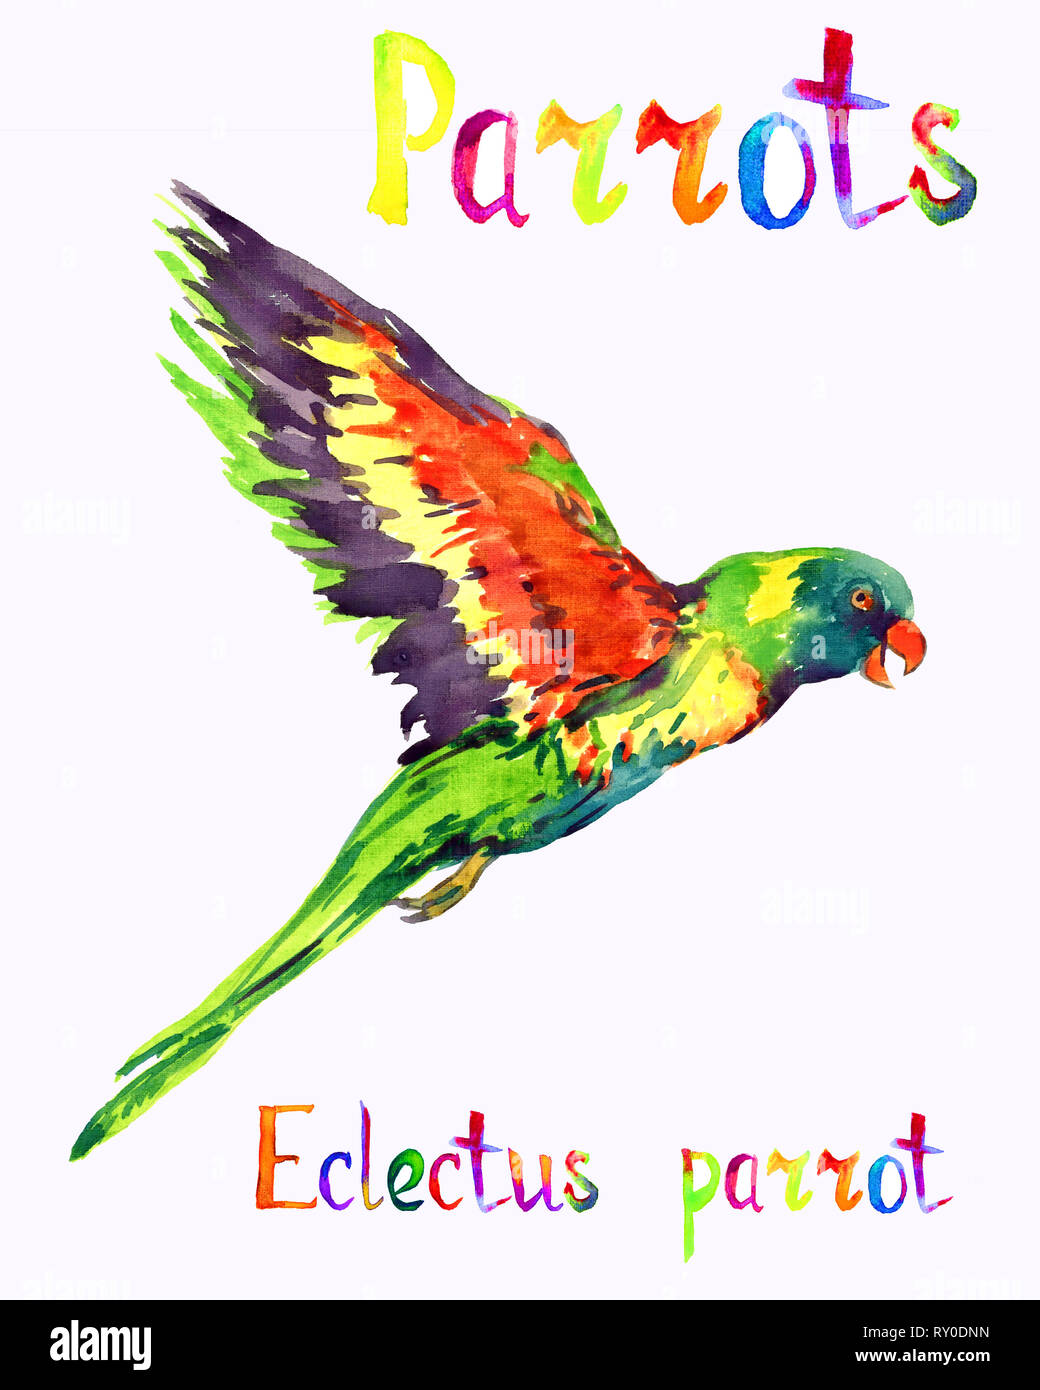 Eclectus parrot (Eclectus roratus) male parrot, isolated hand painted watercolor illustration with handwritten inscription Stock Photo